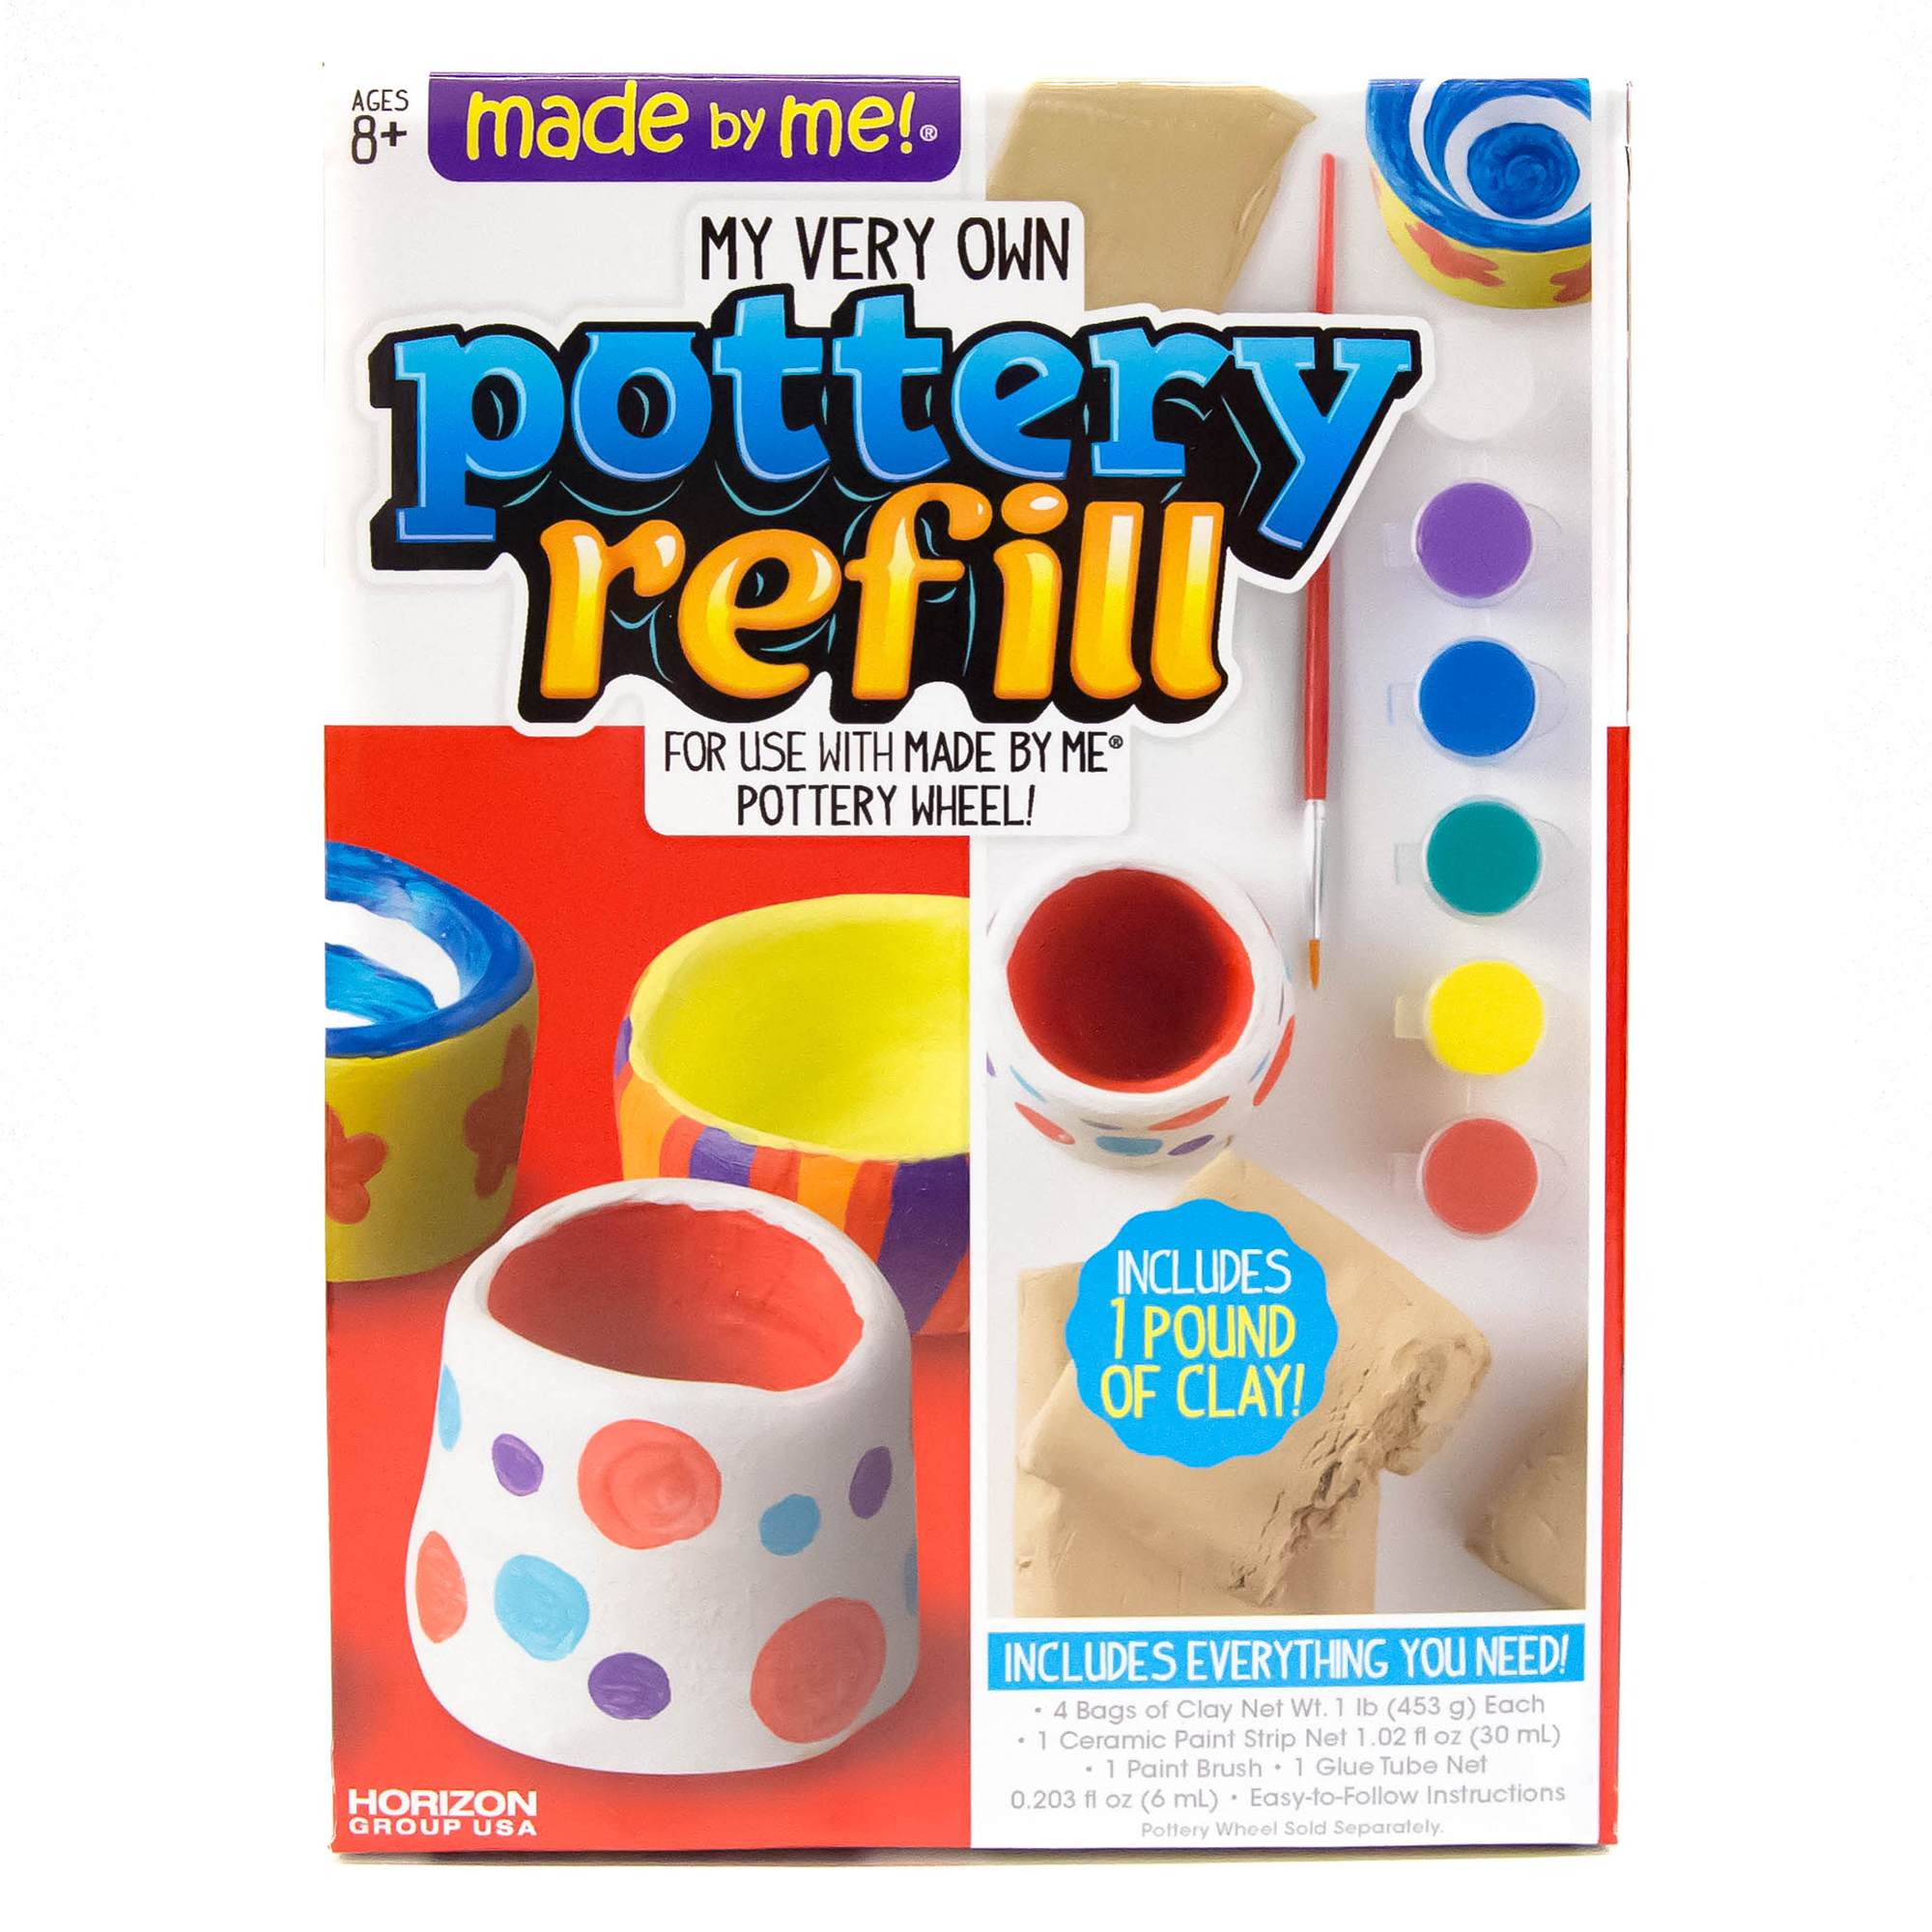 Made By Me Pottery Wheel Refill by Horizon Group USA